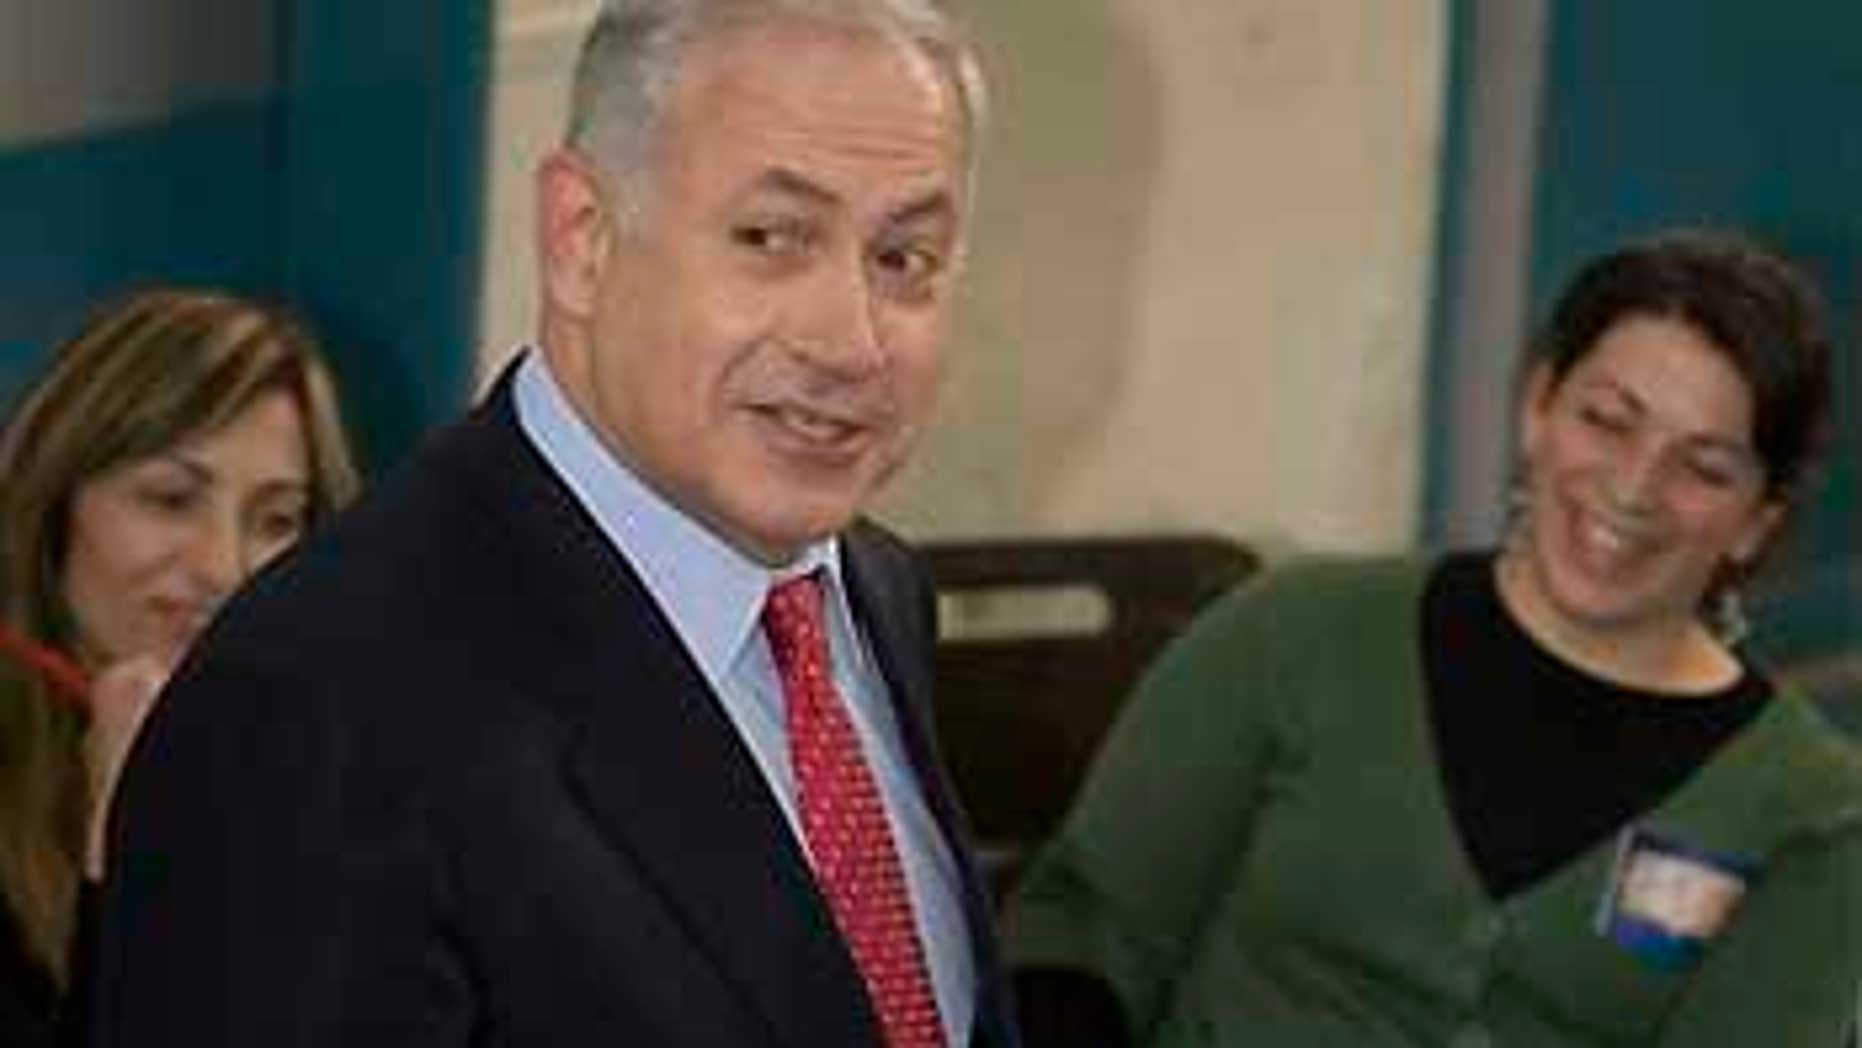 Feb. 10: Likud Party leader Benjamin Netanyahu casts his ballot in Israel's general election at a polling station in Jerusalem.